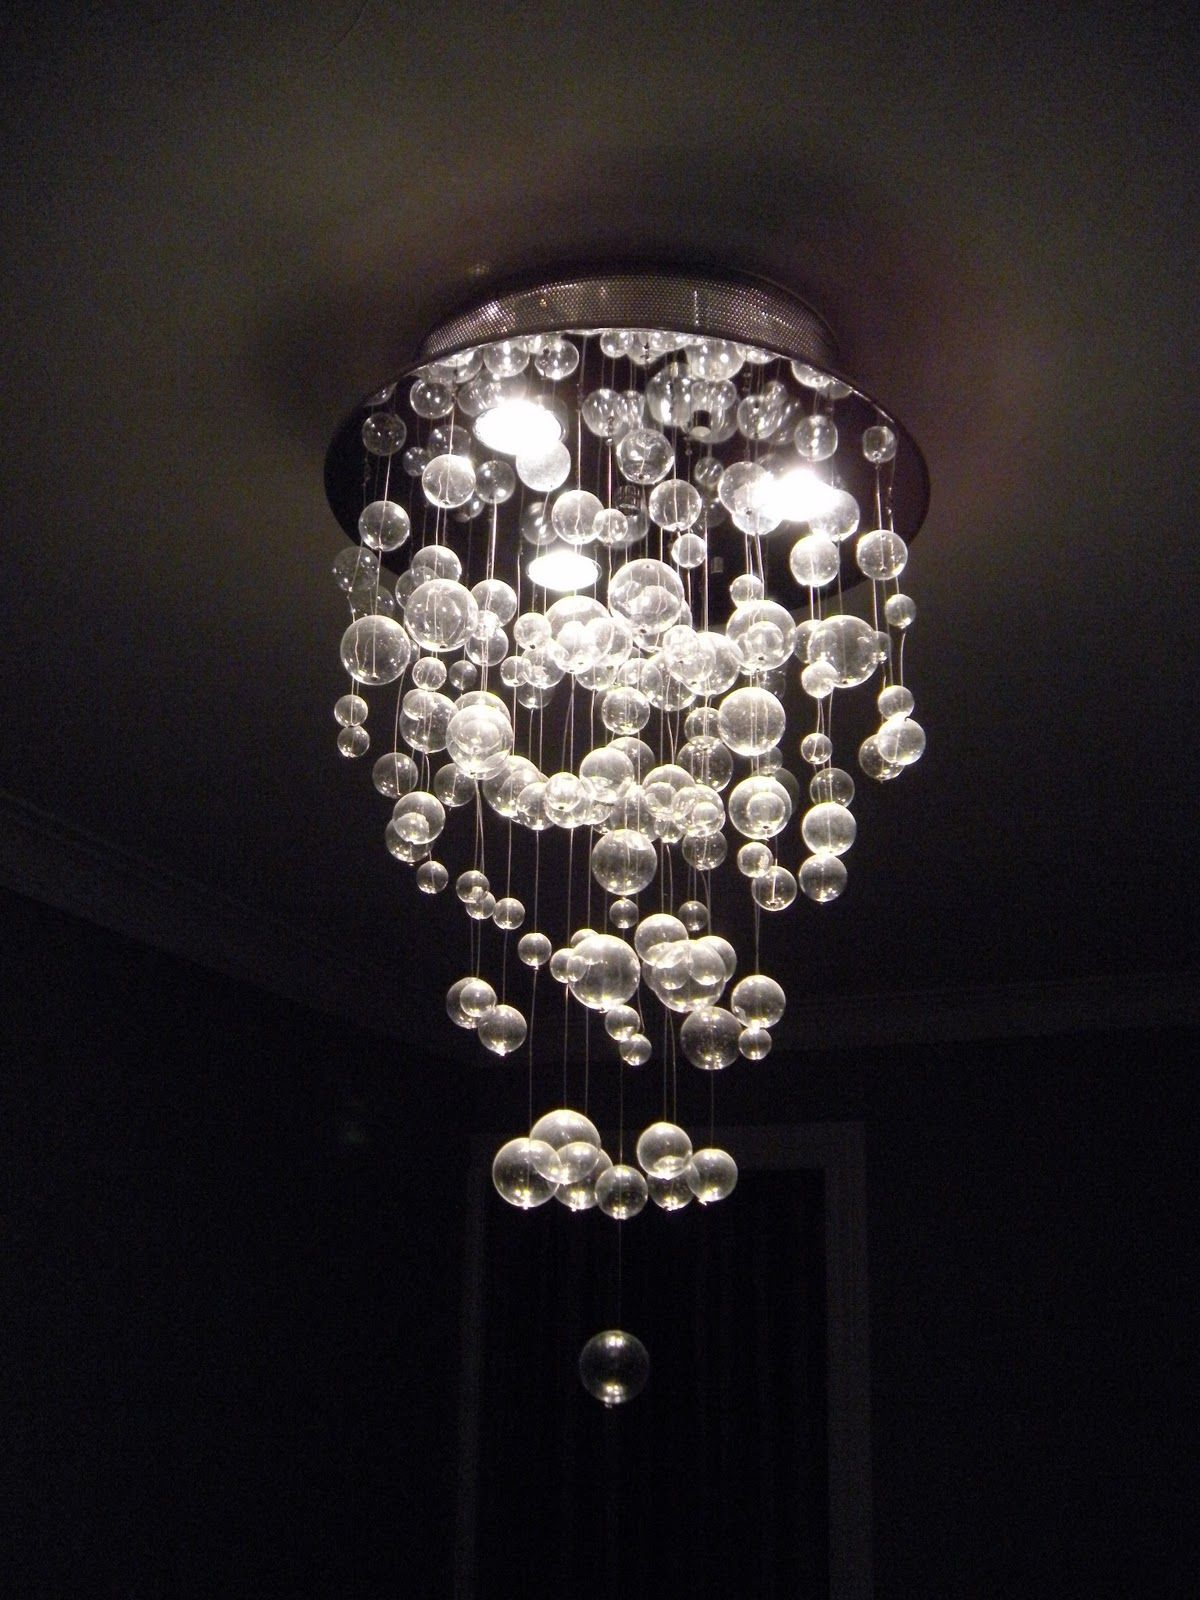 bubble lighting fixtures. Lightings, Charming Glass Bubble Chandelier With Round Holder In Chrome As Modern Ceiling Lights Fixtures Ideas: Lavish Lighting Artworks 3